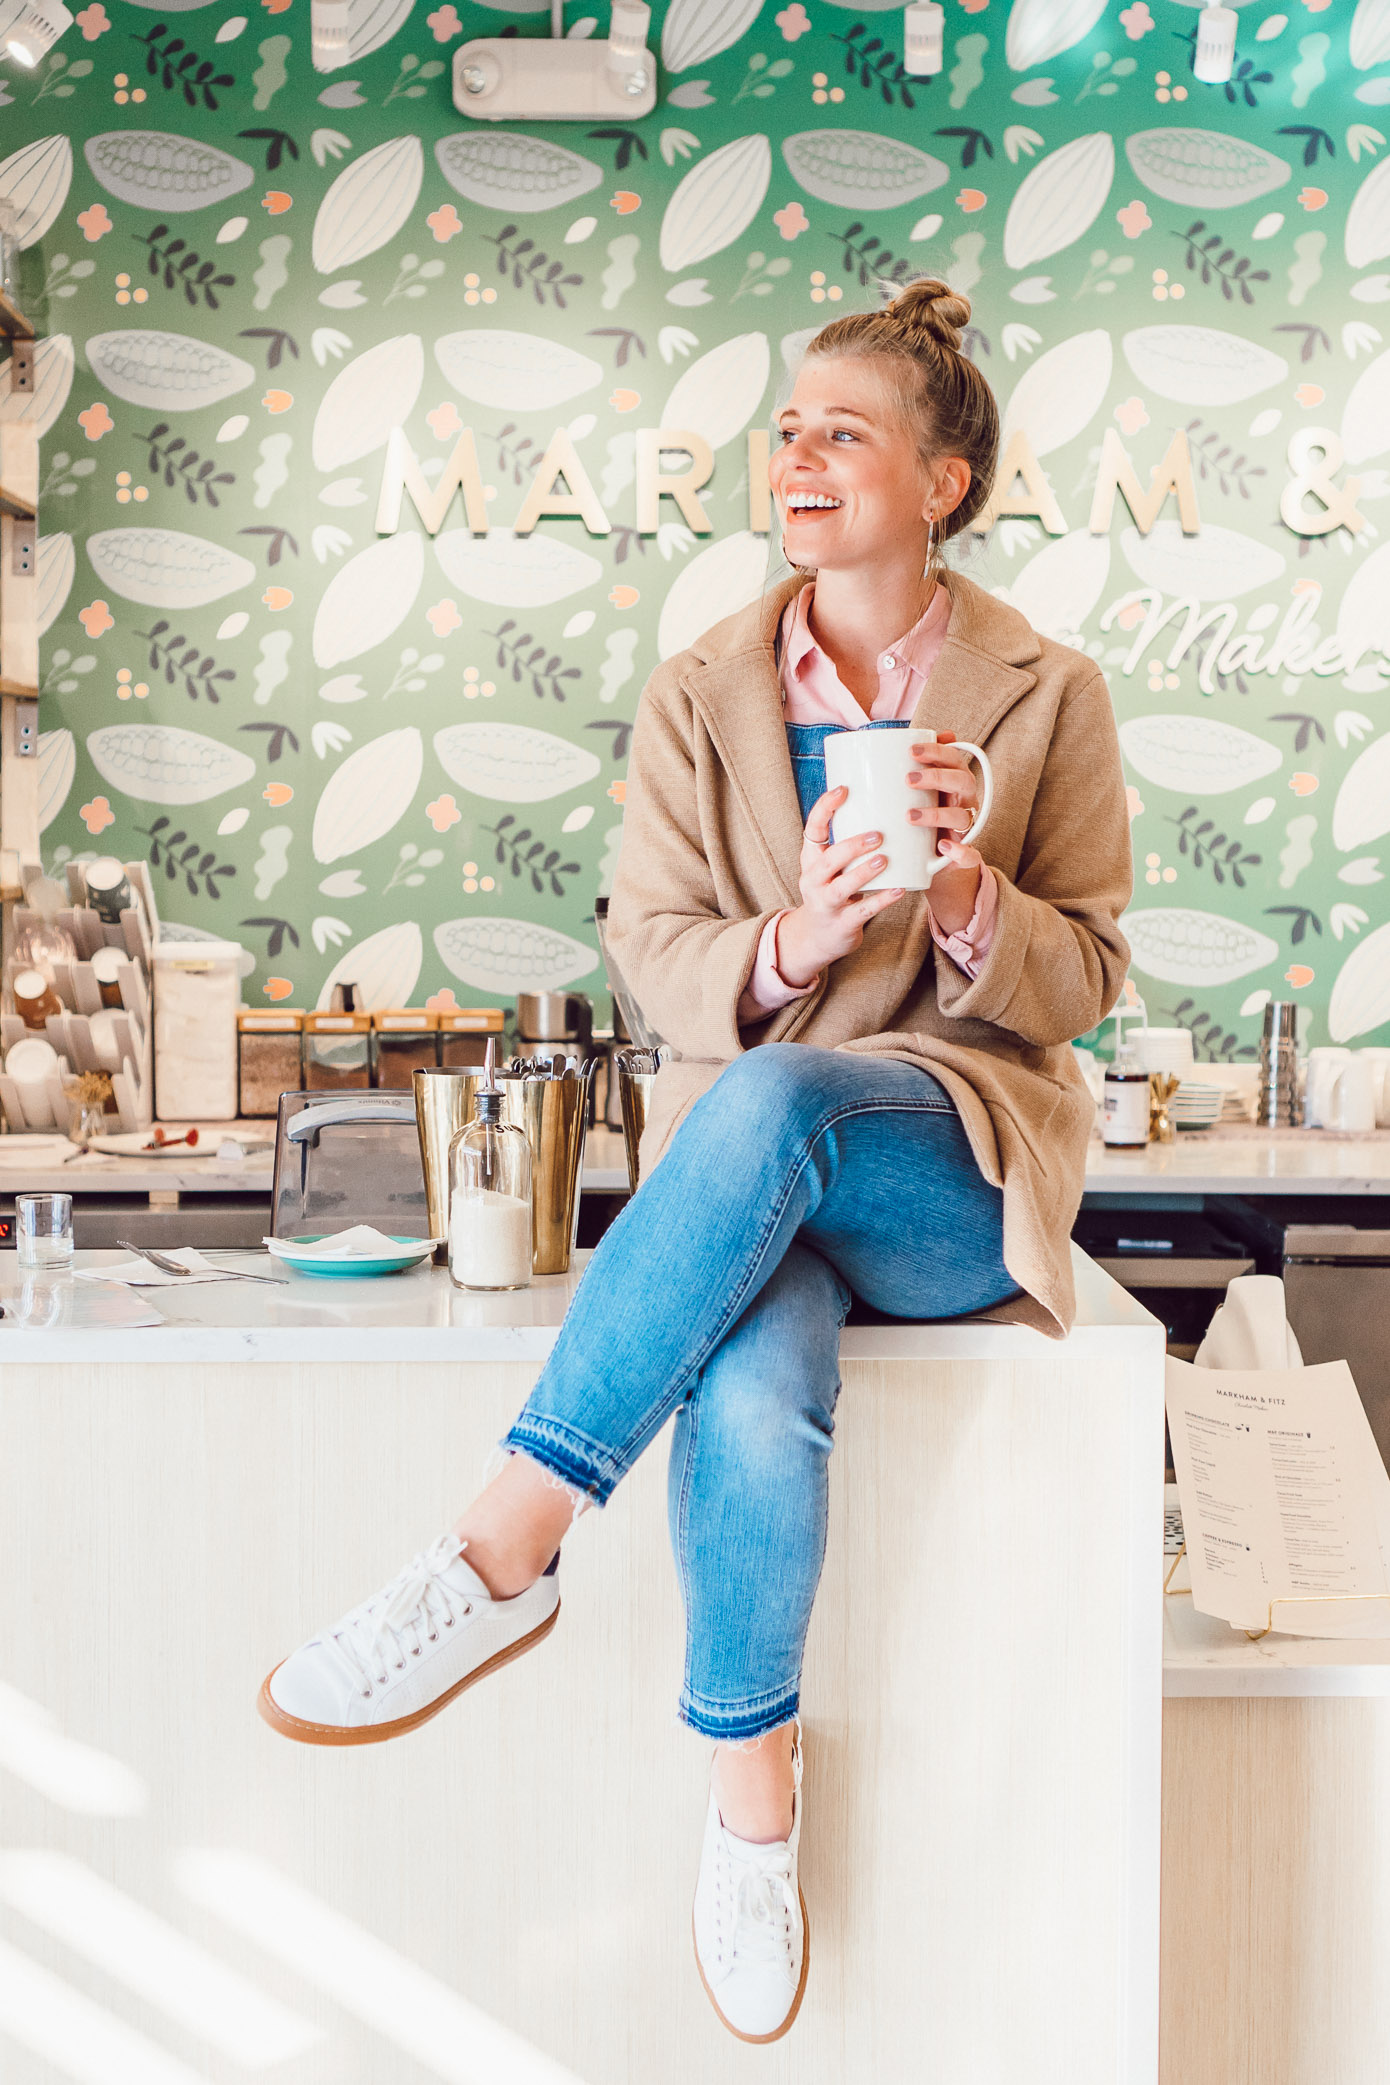 Markham & Fitz Chocolate | Bentonville Arkansas Travel Diary featured on Louella Reese | Unexpected Long Weekend Getaway